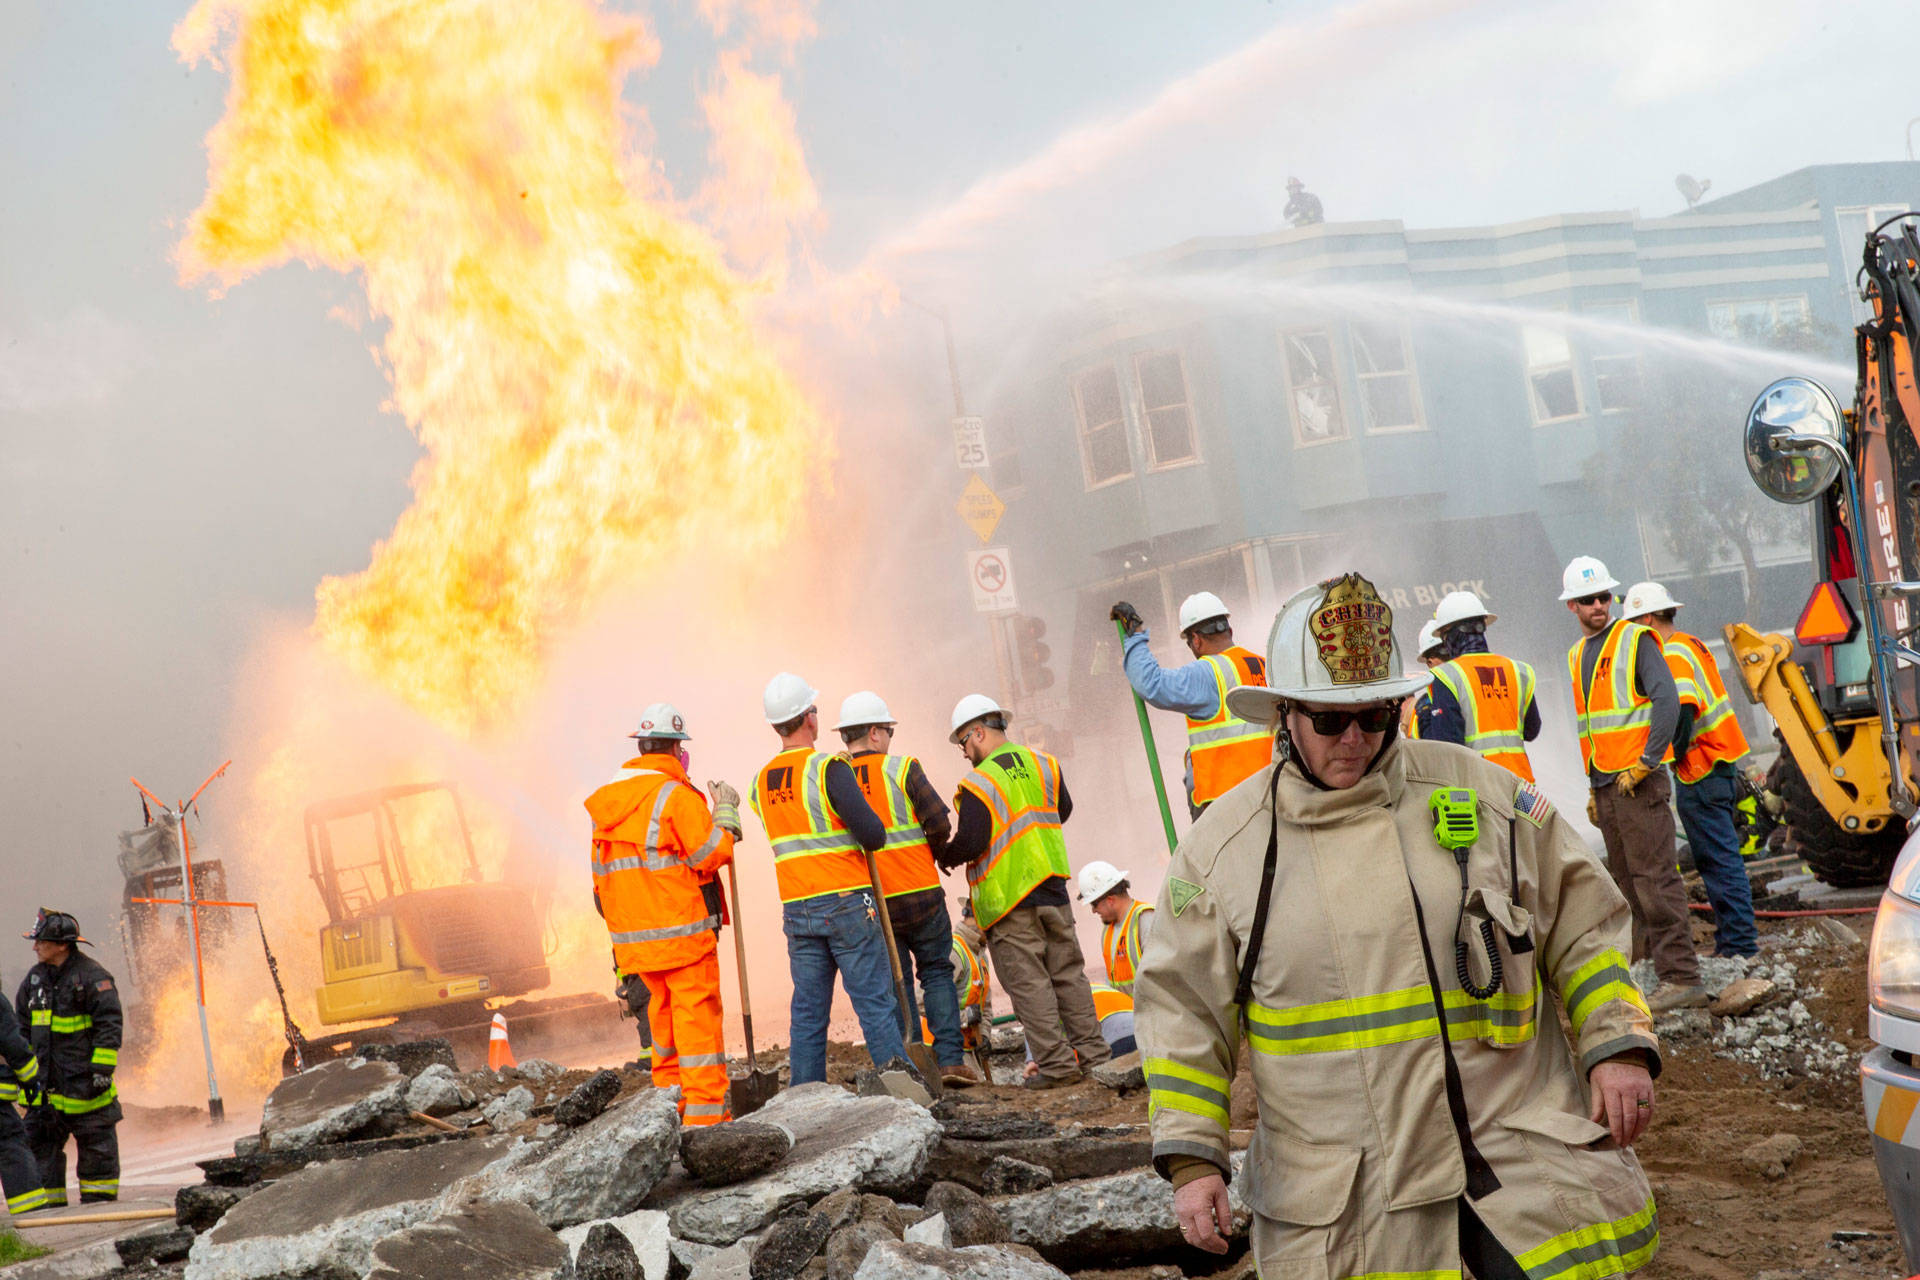 Contractor Tied to San Francisco Pipeline Explosion Didn't Have a